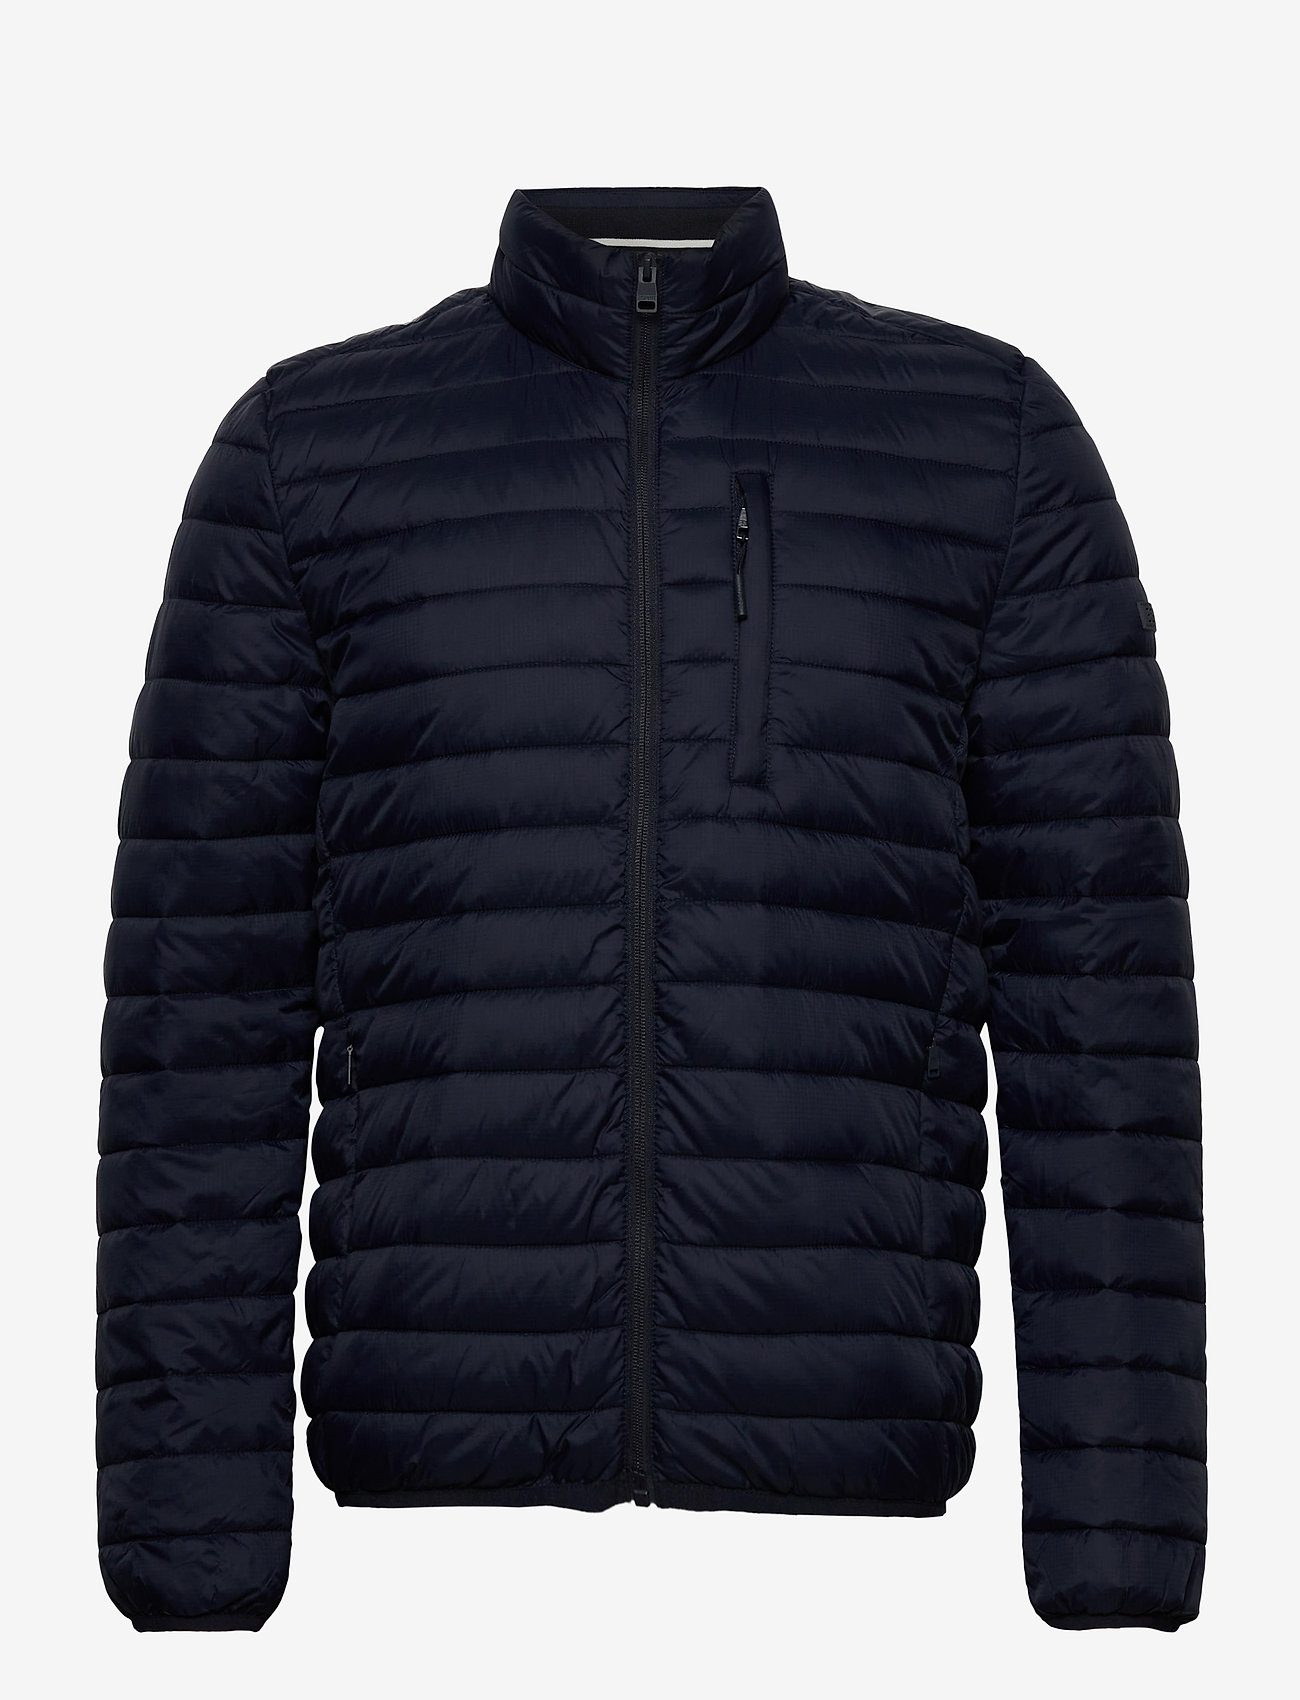 Esprit Casual - Jackets outdoor woven - padded jackets - dark blue - 1